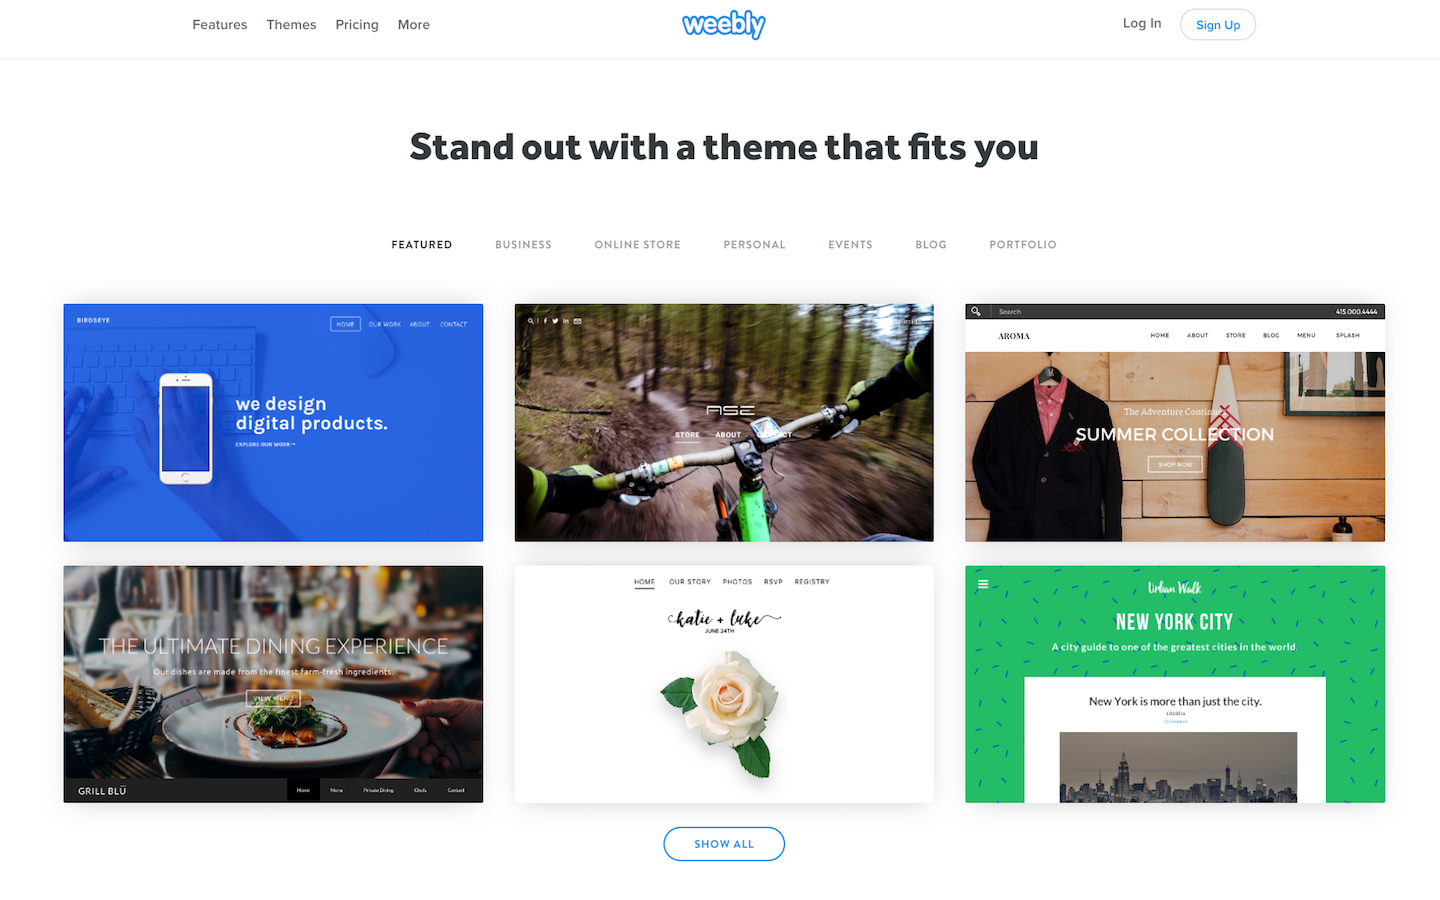 Stripe Partners: Weebly